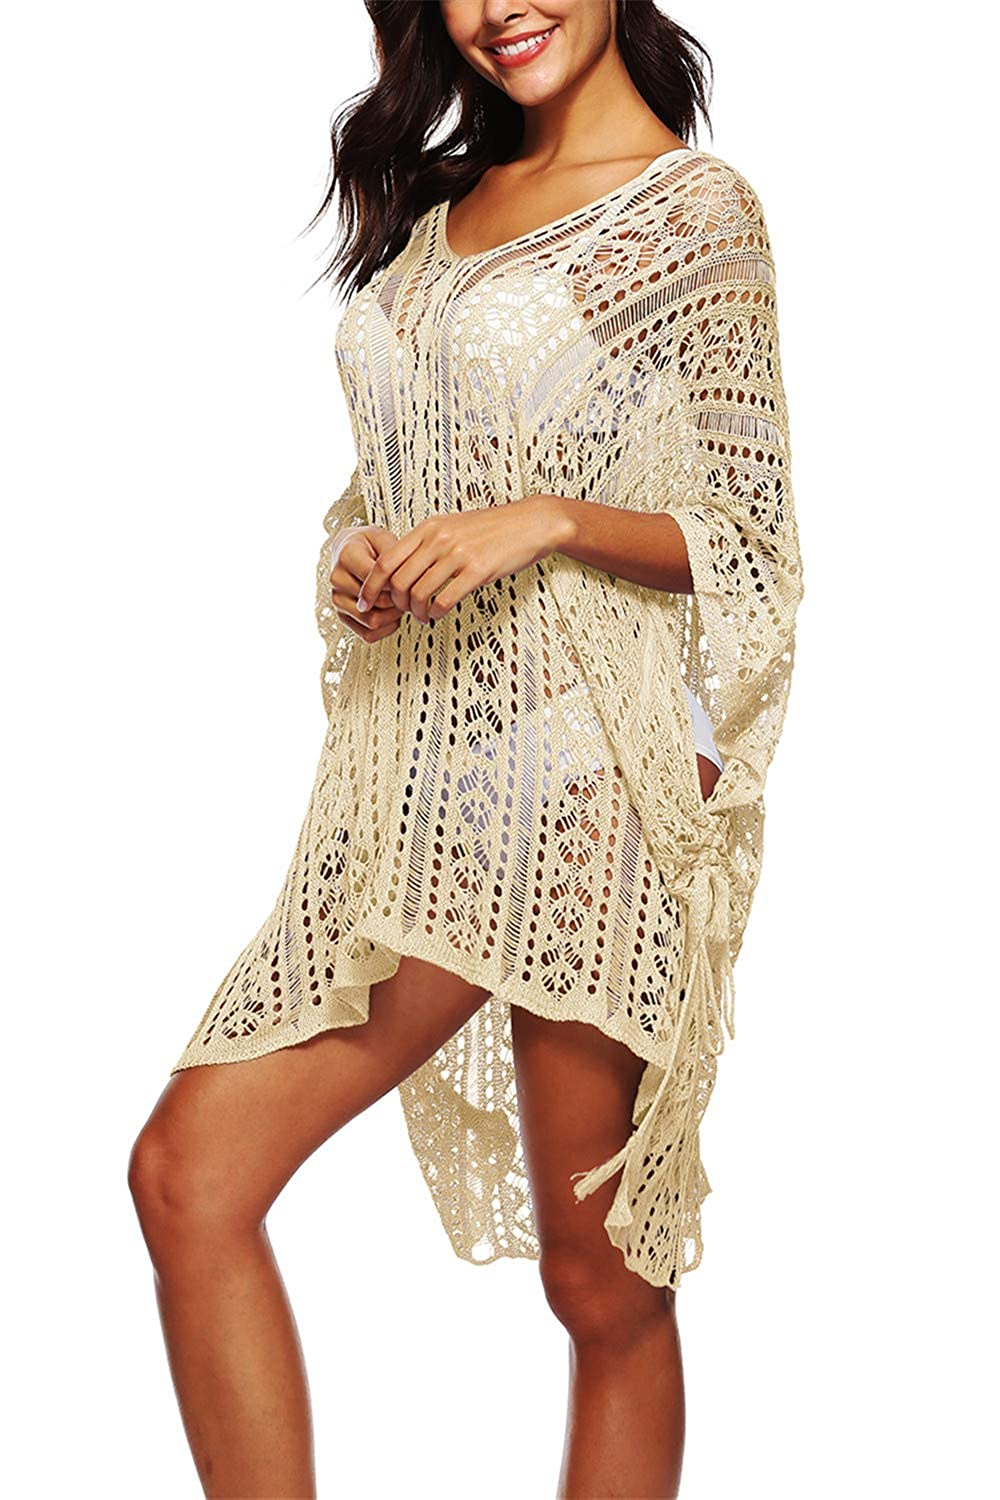 1fff6b8fd ReachMe Womens Crochet Swimsuits Cover Ups Knitted Bathing Suit Coverups  Lace Beach Dress(Beige, One Size) at Amazon Women's Clothing store: